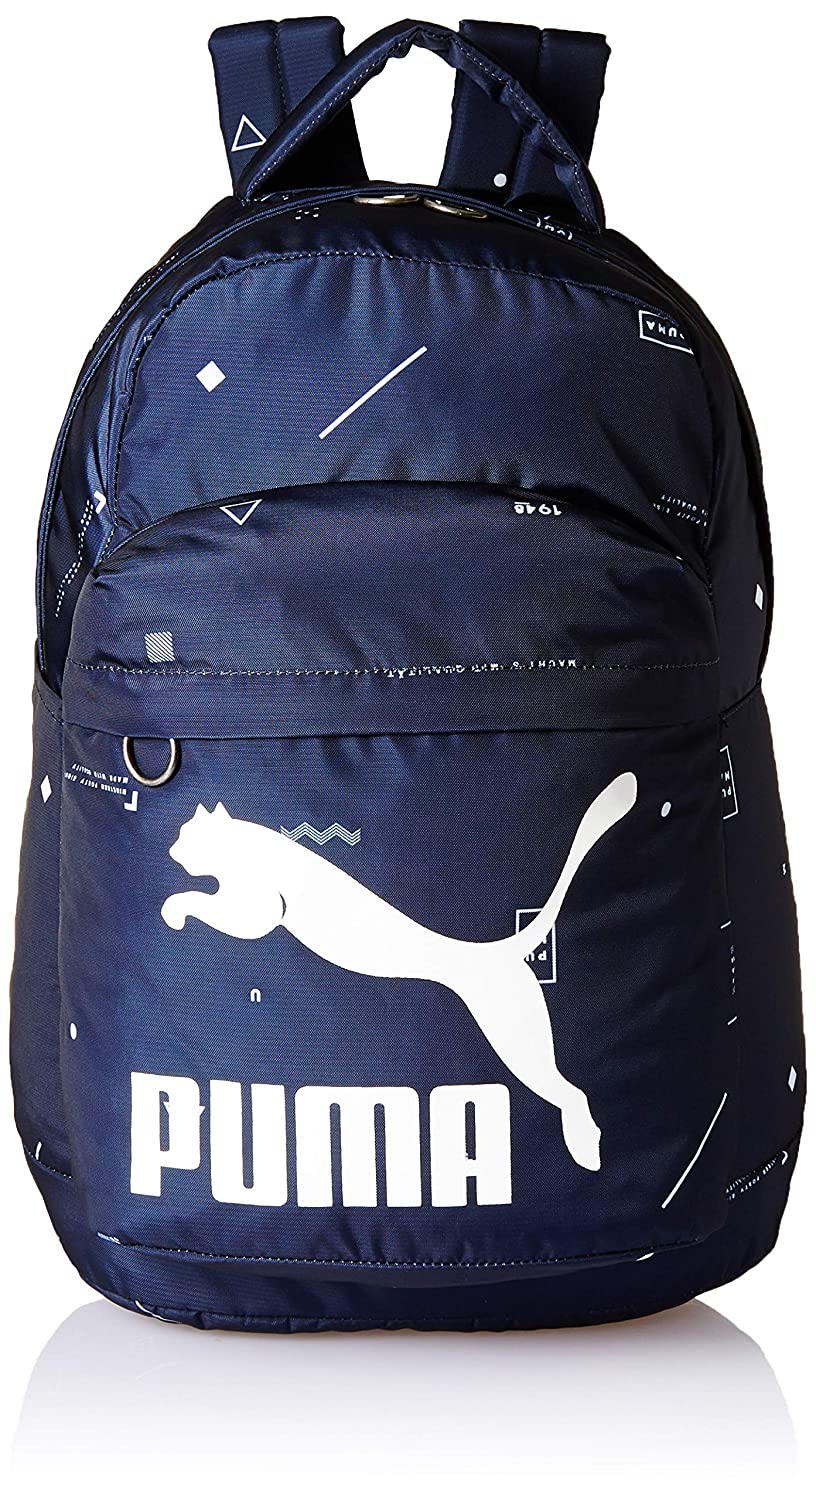 6006bd406c7 Puma 22.95 Ltrs Peacoat-Graphic School Backpack (7567607): Amazon.in: Bags,  Wallets & Luggage